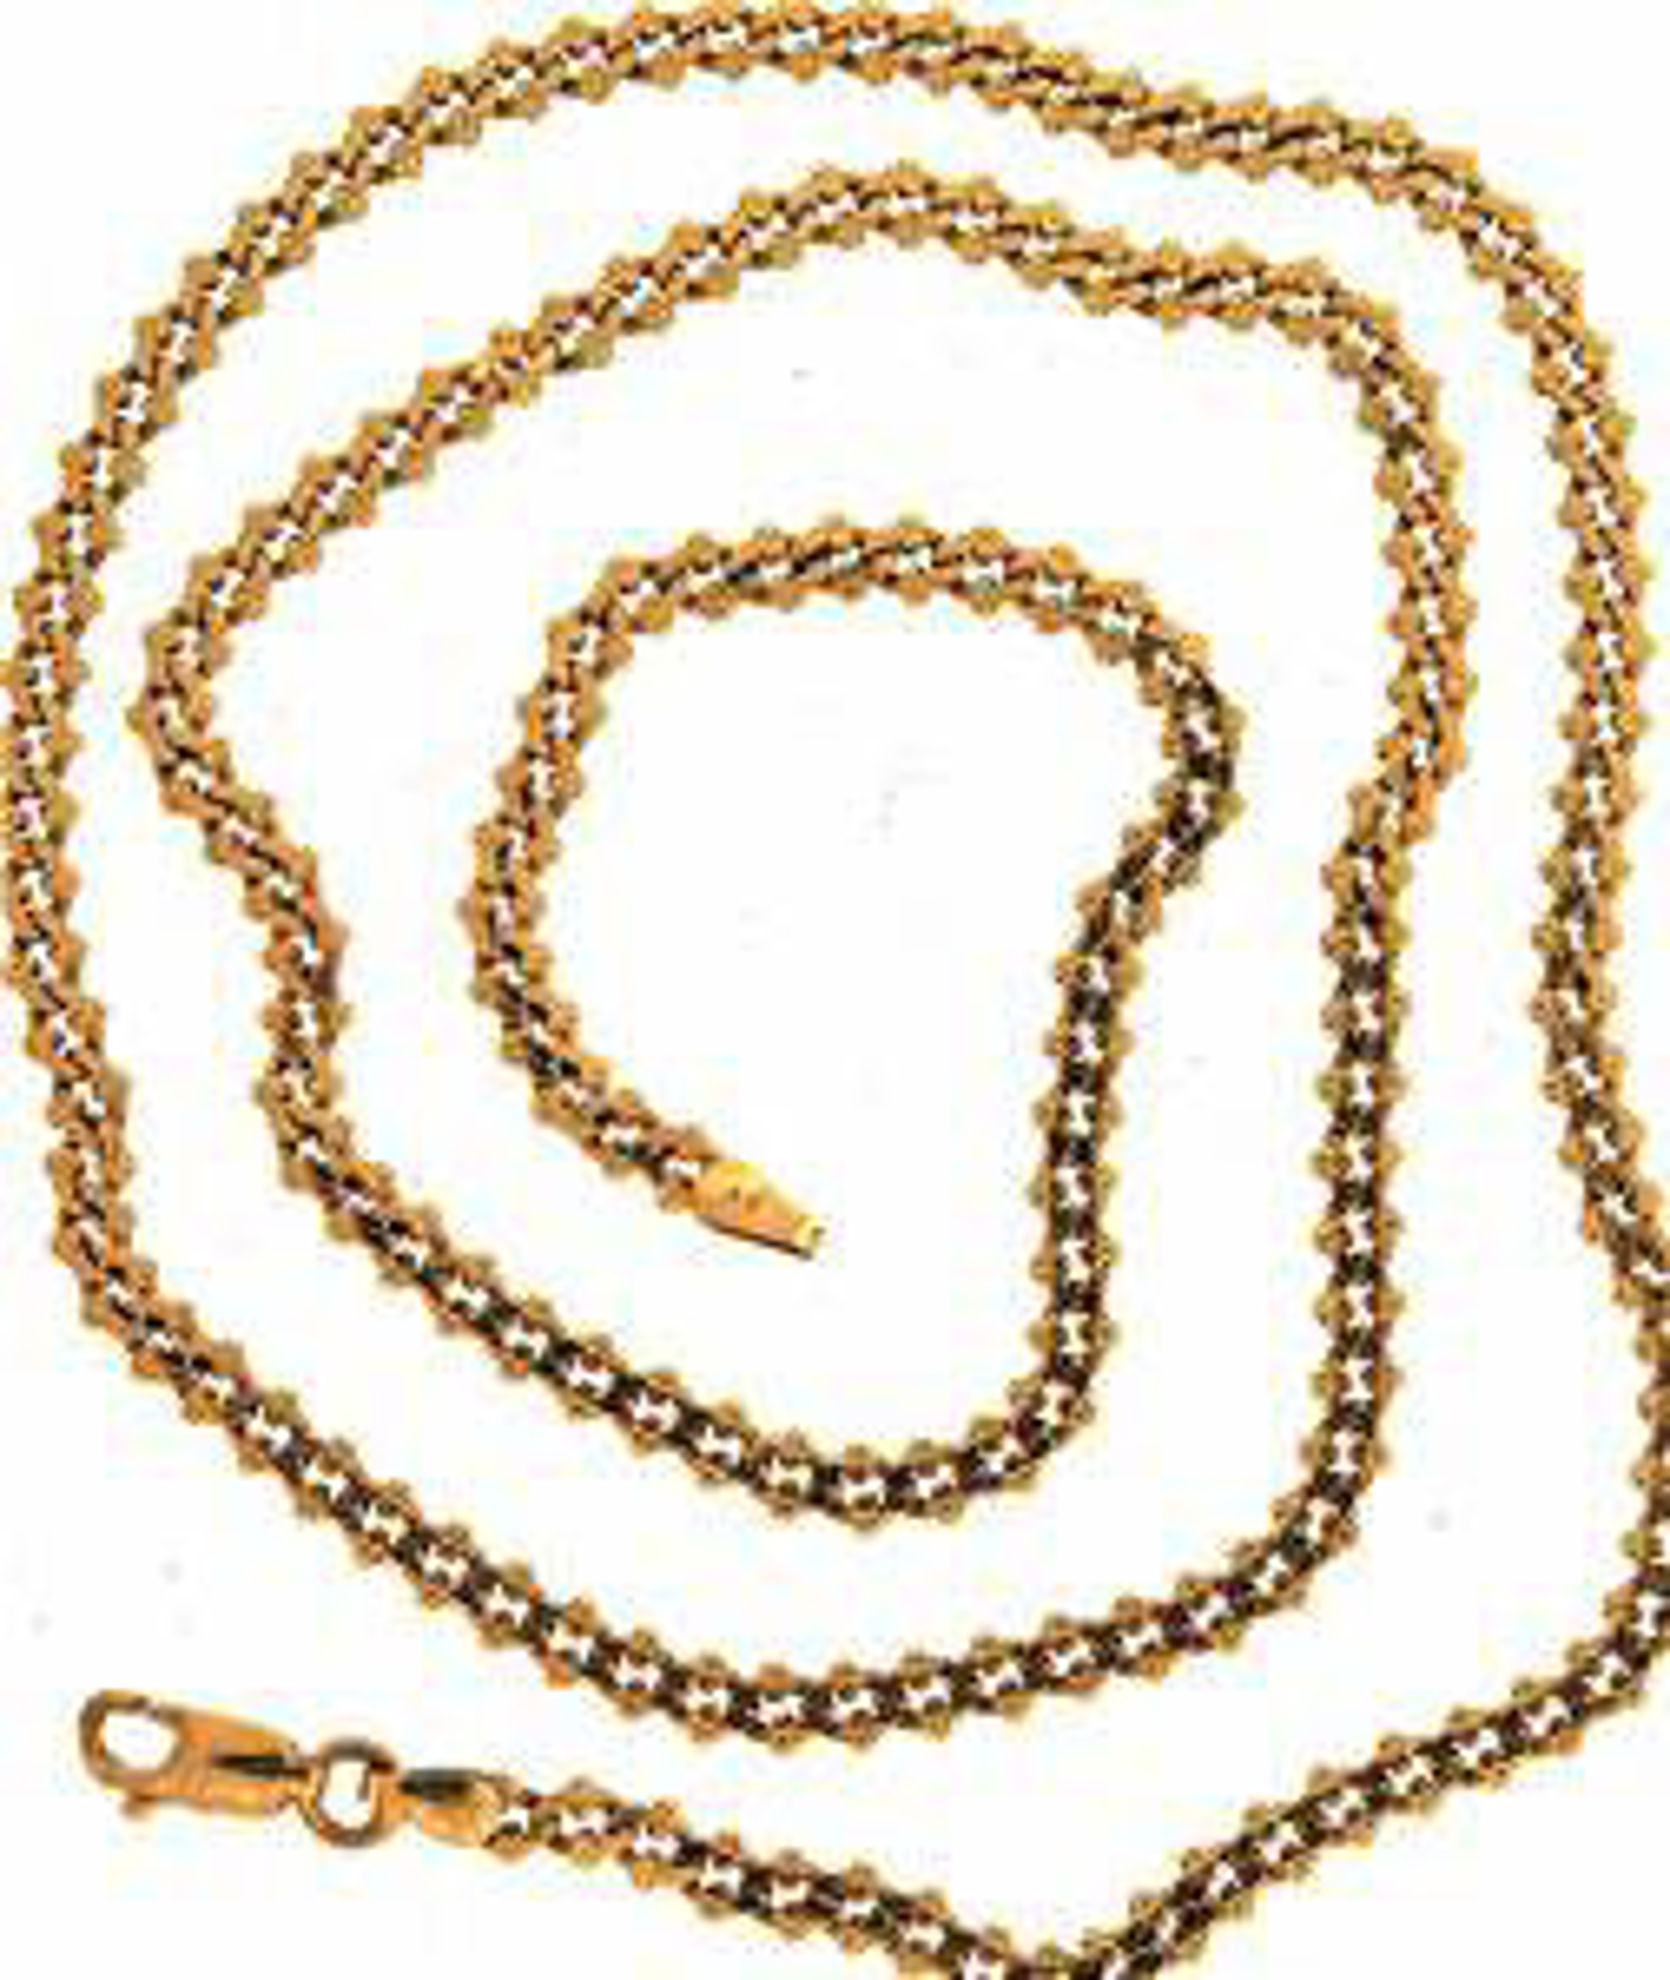 Picture of Chains 14kt-8.7 DWT, 13.5 Grams